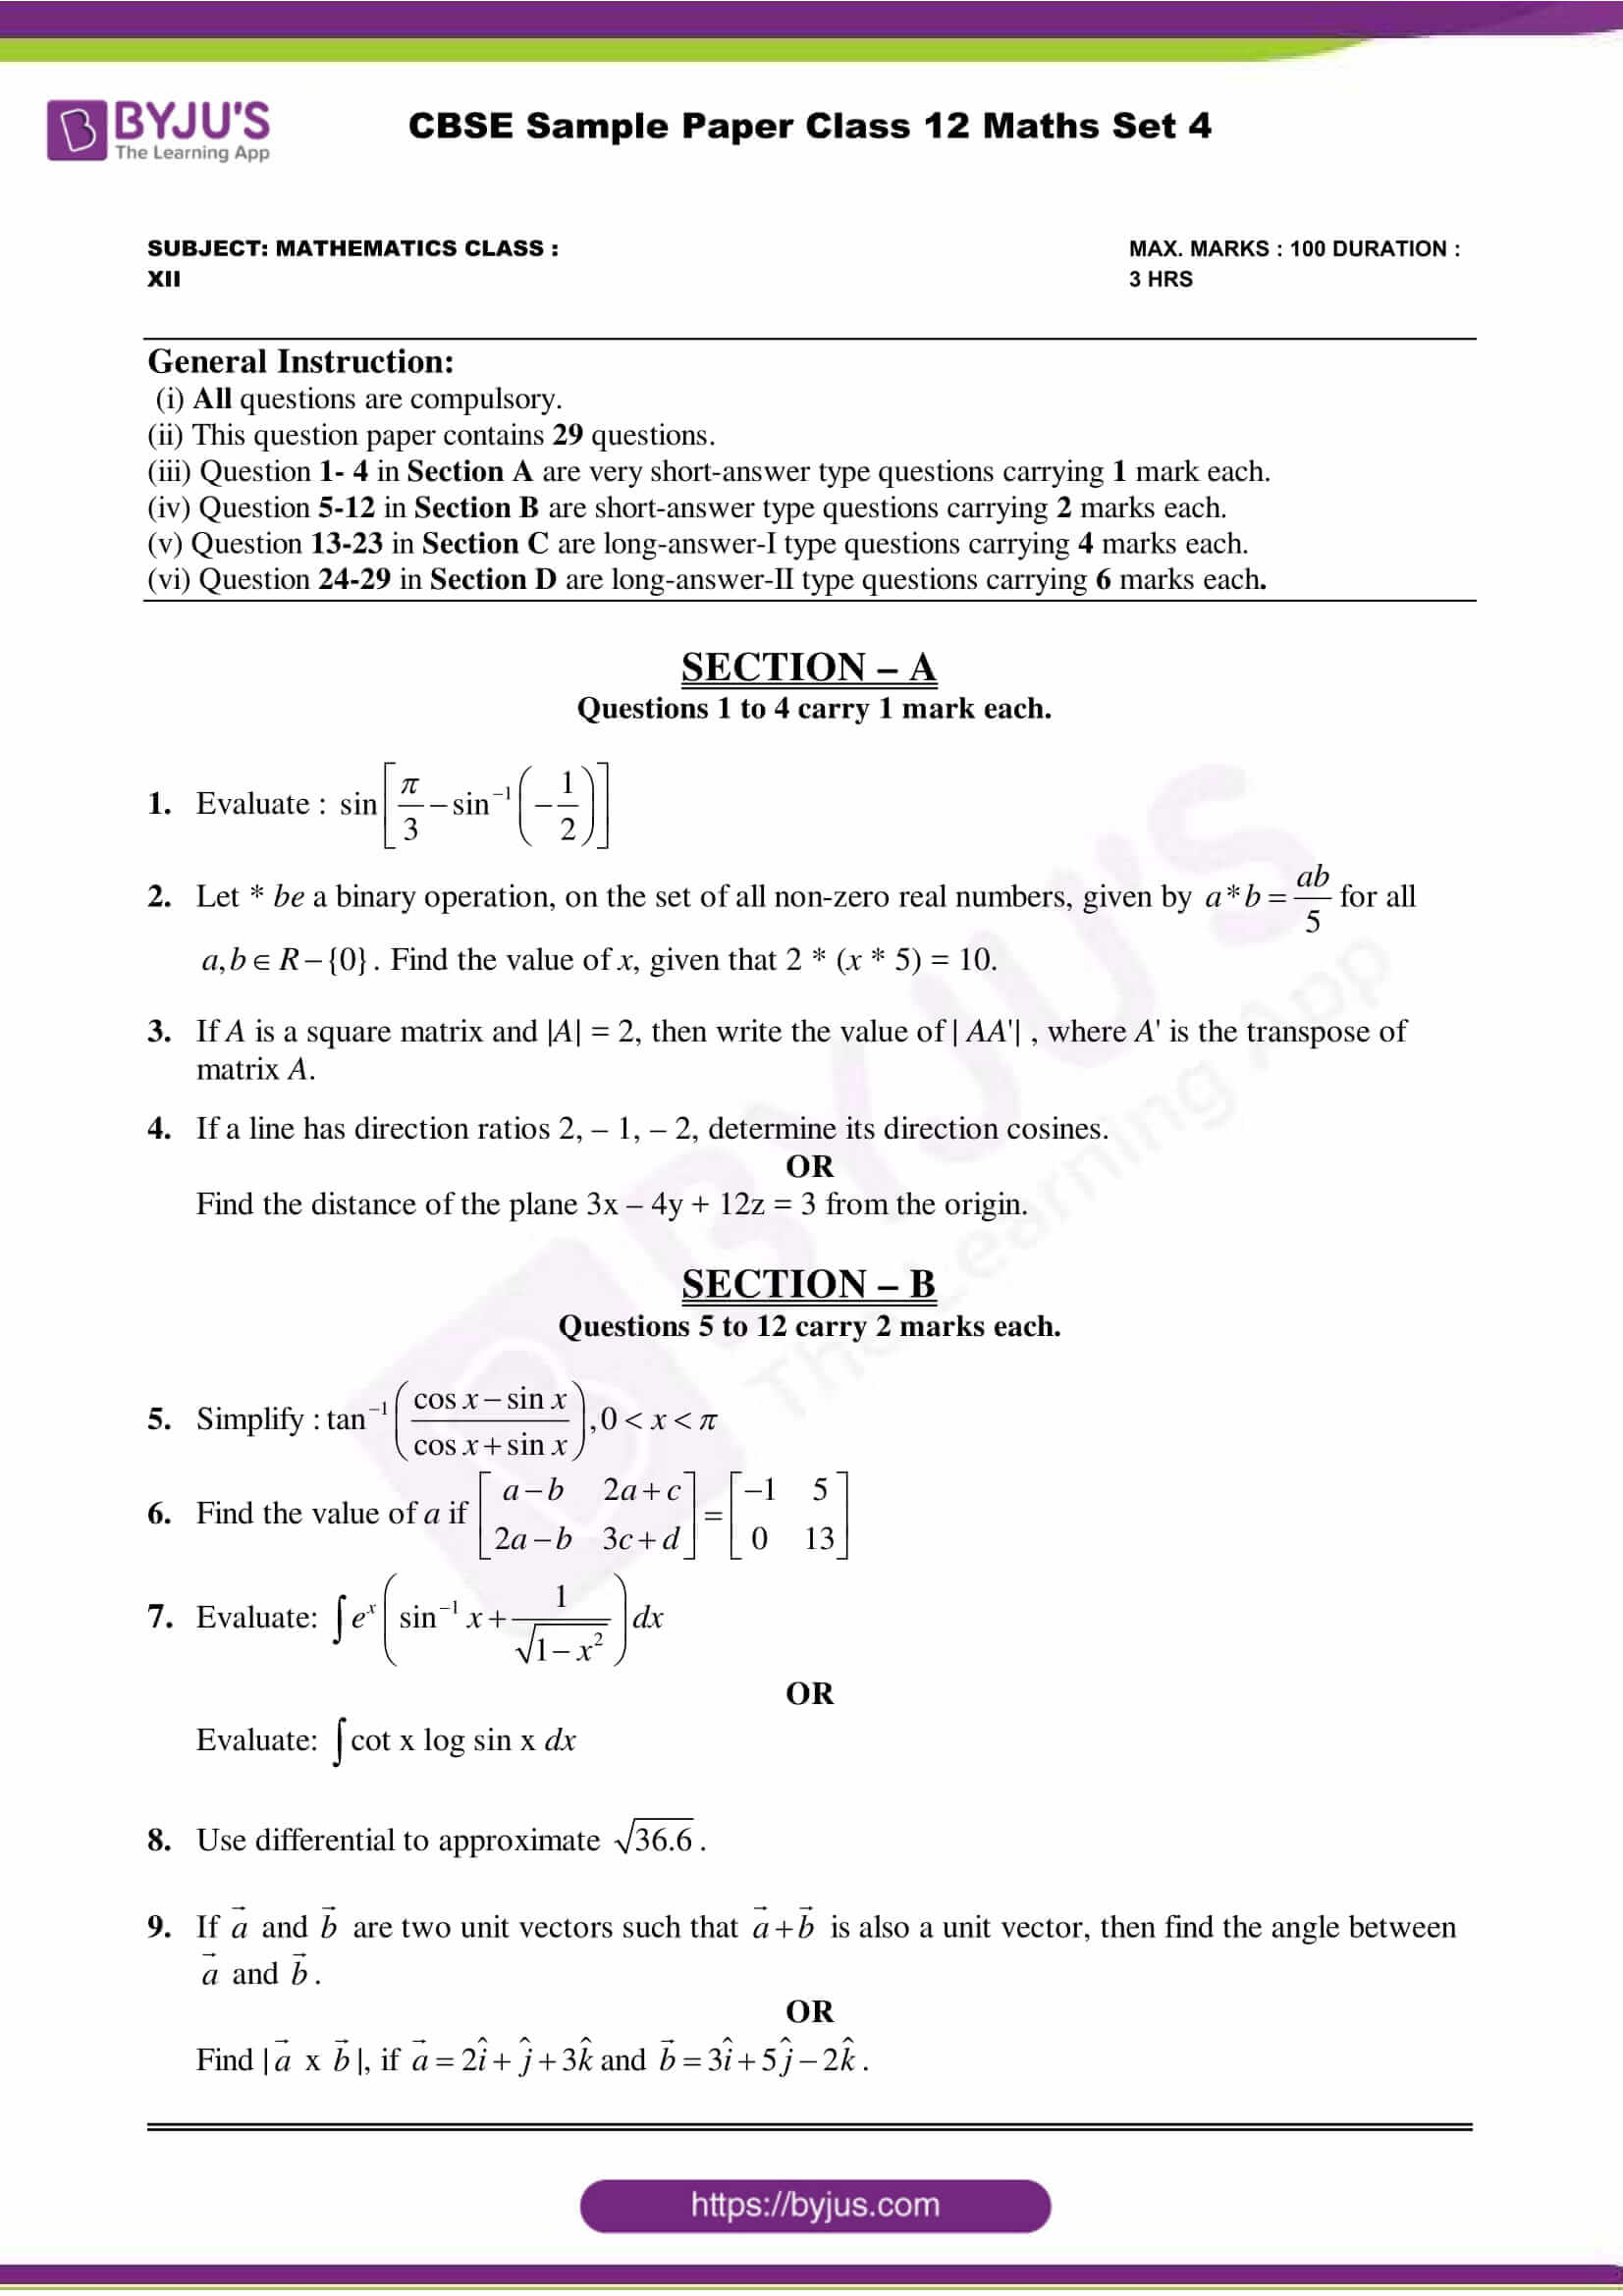 cbse class 12 maths sample paper set 4